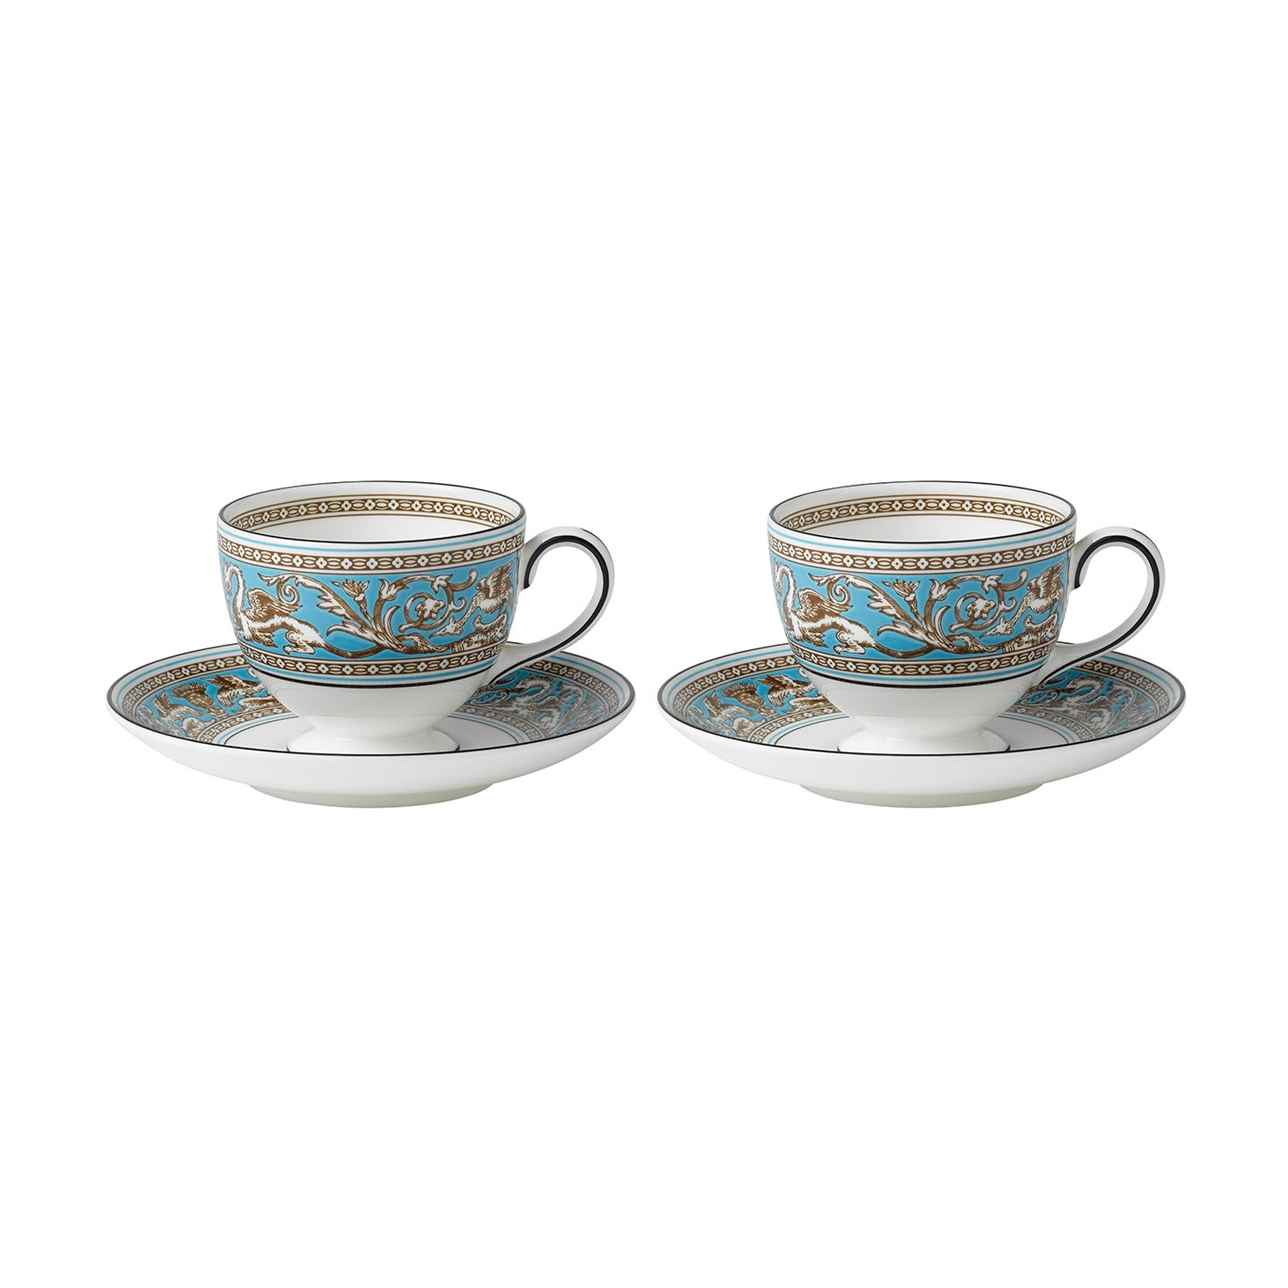 Florentine Turquoise Teacup & Saucer, Set of 2